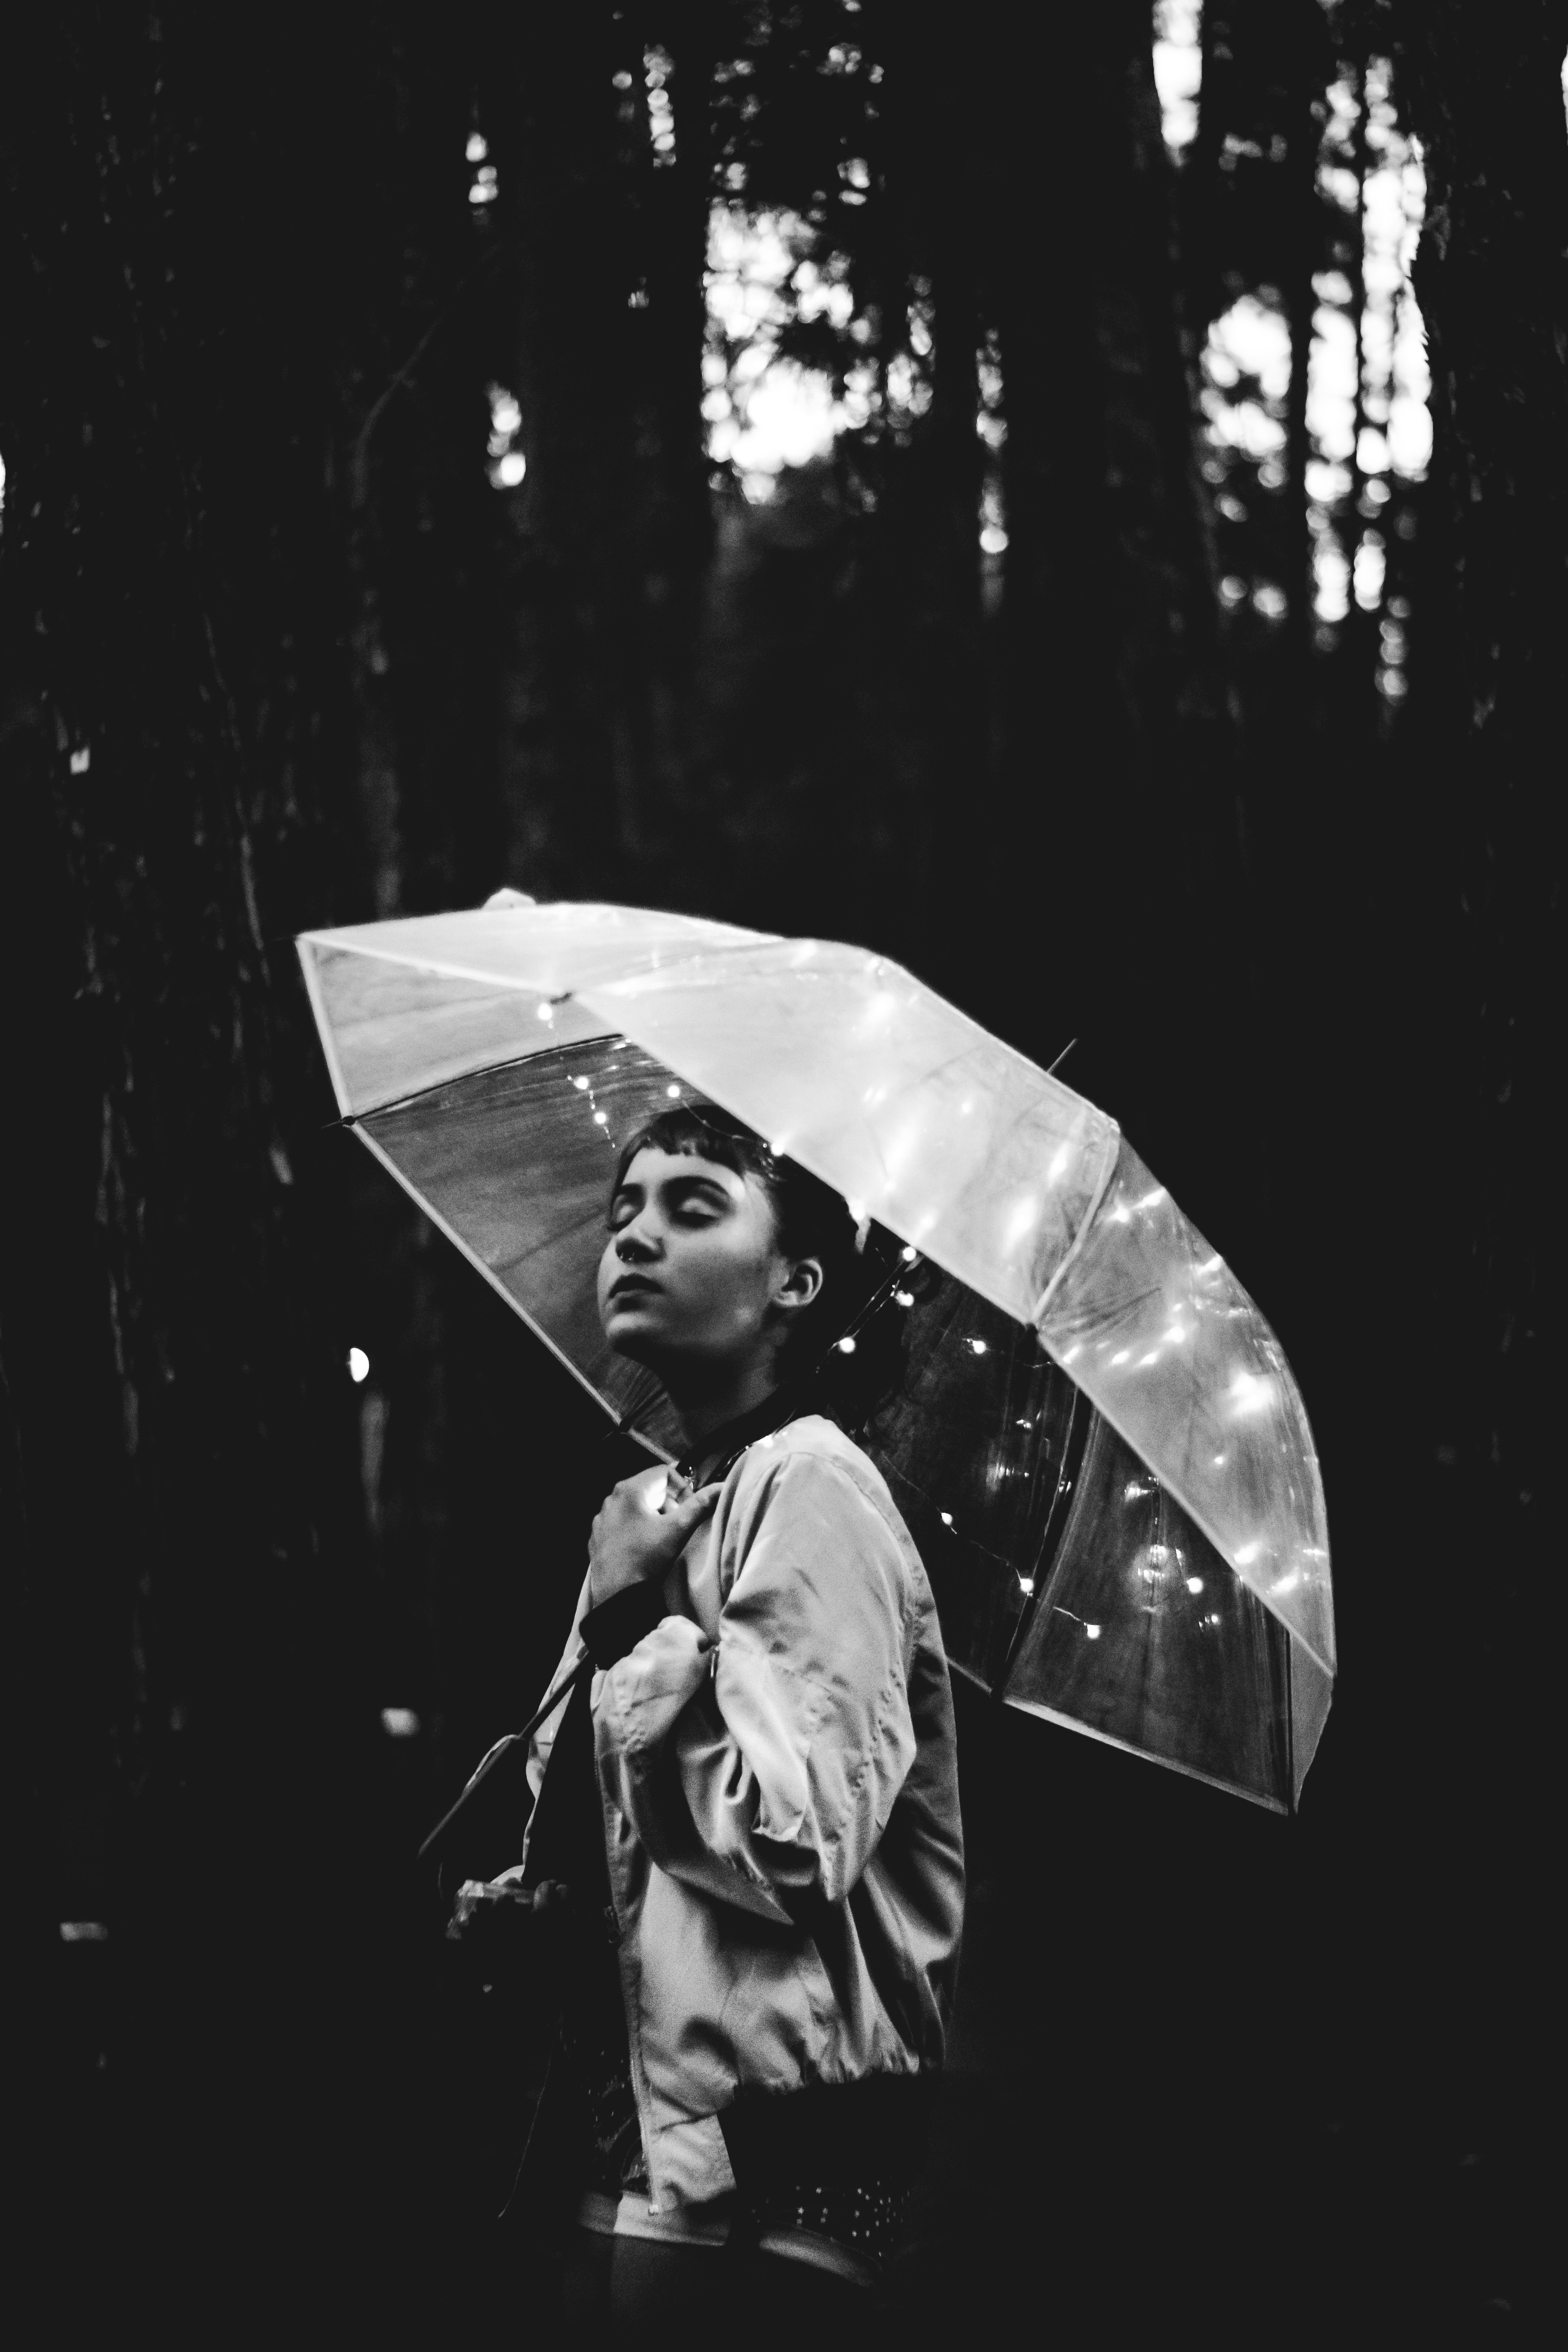 Grayscale Image of Woman Walking Through the Rain While Holding Umbrella, Adult, Silhouette, Woman, Wear, HQ Photo